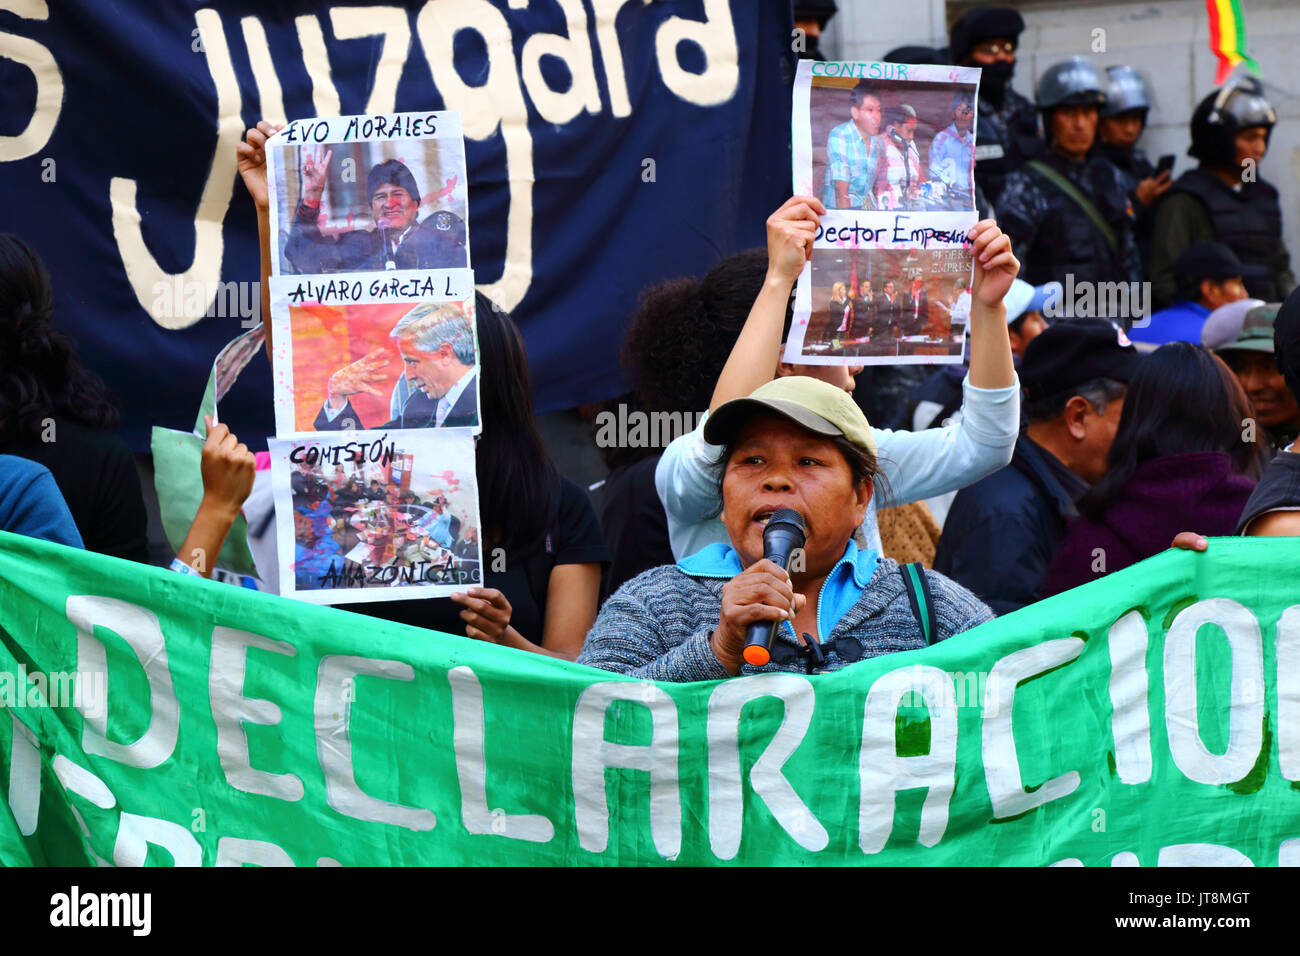 La Paz, Bolivia, 8th August 2017. TIPNIS Subcentral indigenous leader Marqueza Teco speaks at a meeting to show opposition to government plans to annul Law 180, which is being debated today in the senate. Behind her protesters hold blood covered photos of Bolivian president Evo Morales, vice president Alvaro Garcia Linera and other public figures. Credit: James Brunker / Alamy Live News - Stock Image